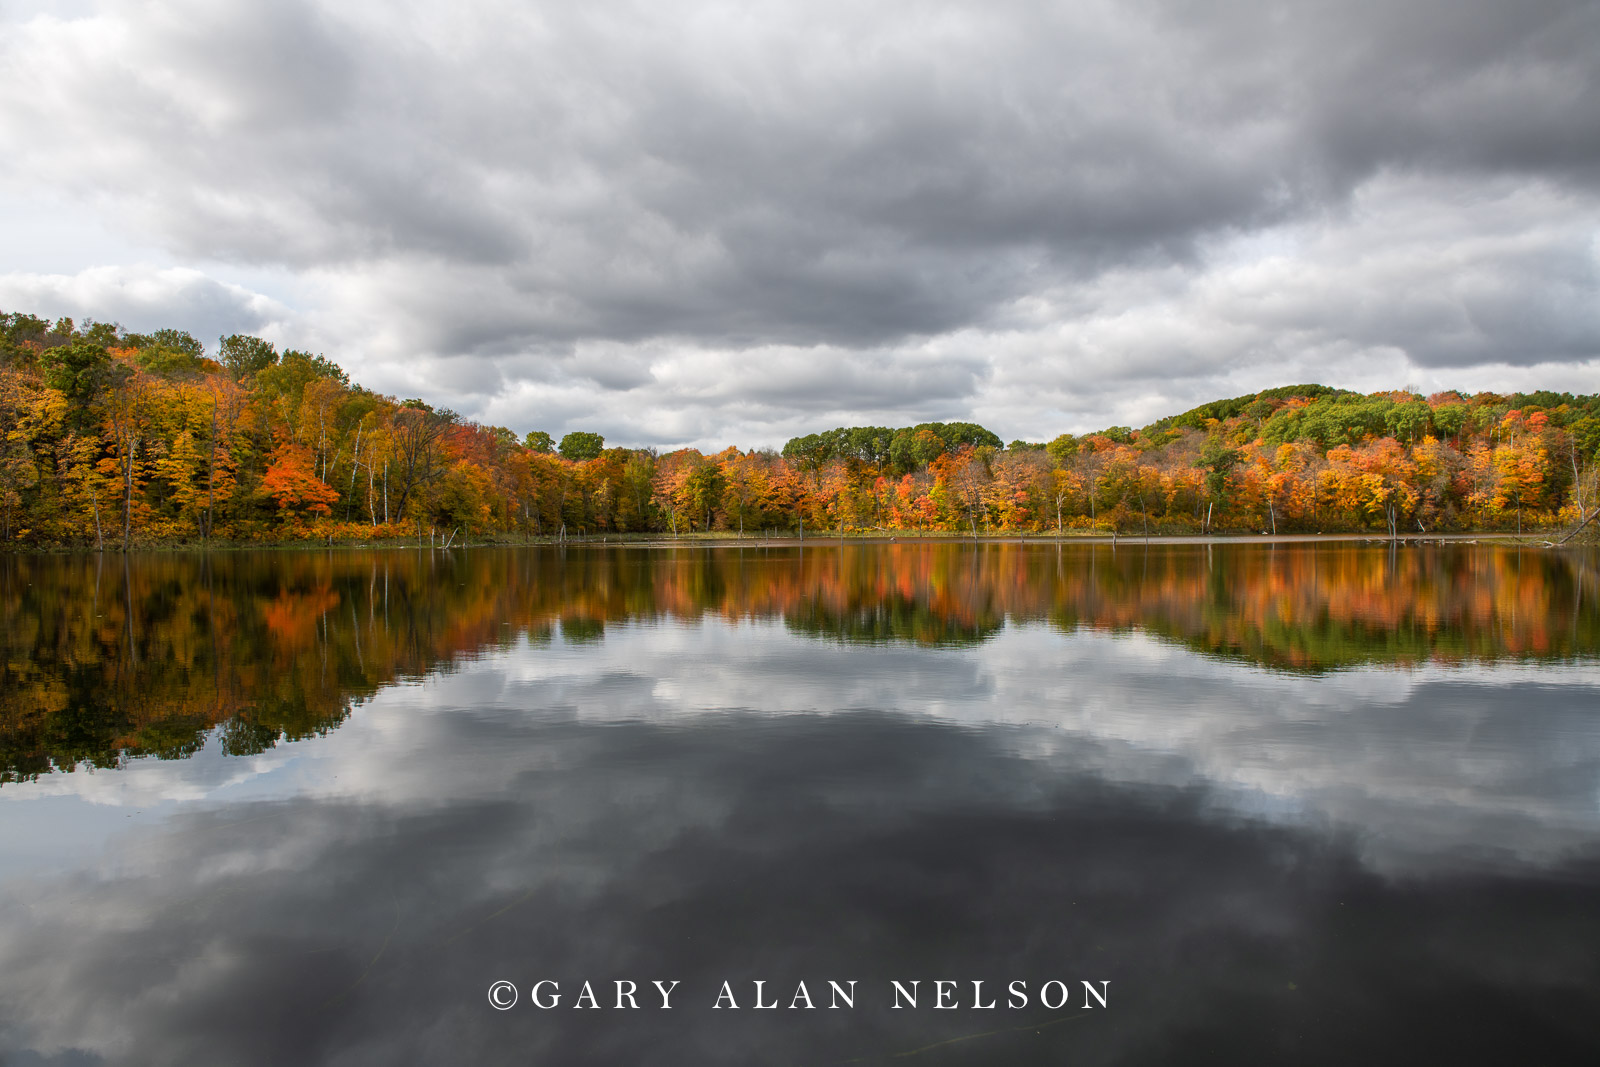 Clouds and autumn reflections on calm pond, Maplewood State Park, Minnesota